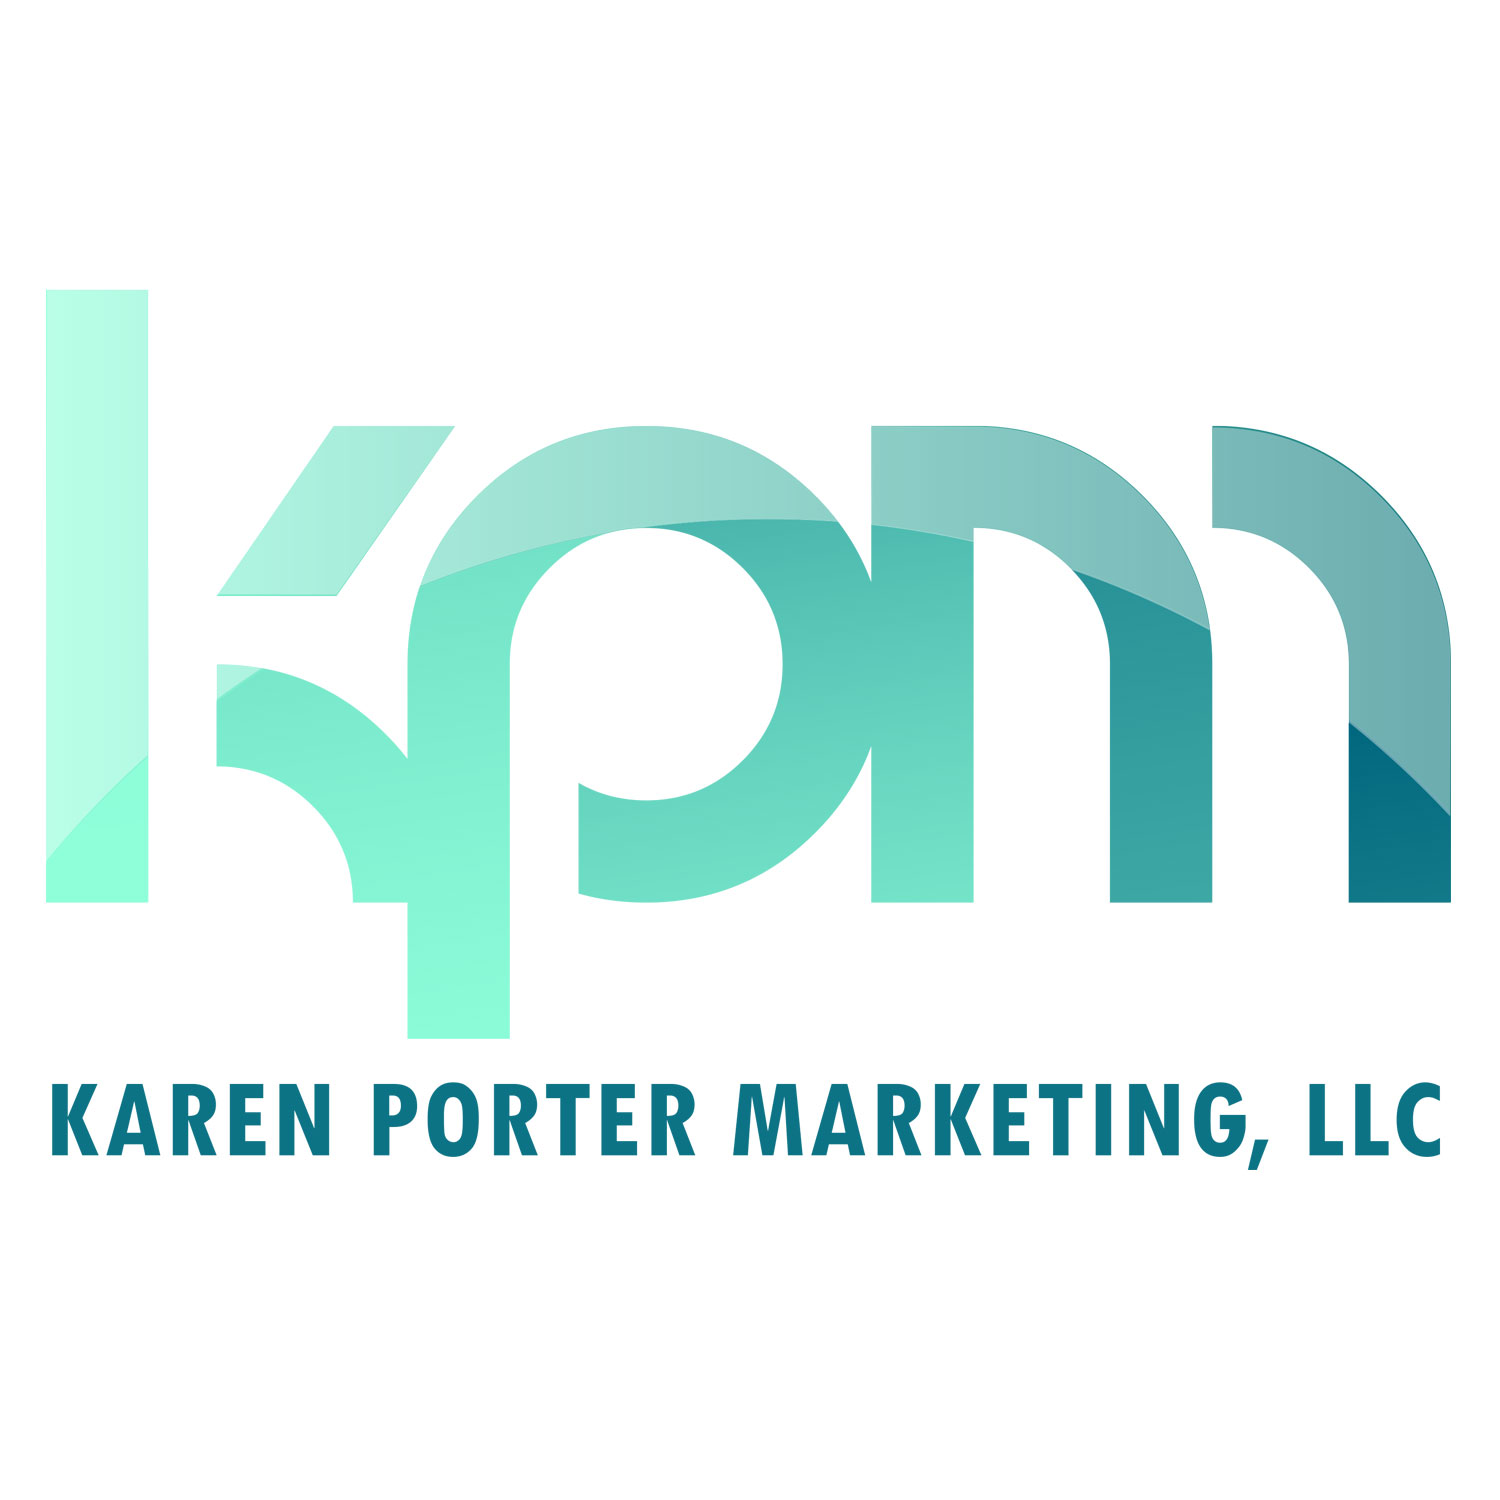 Karen Porter Marketing, LLC image